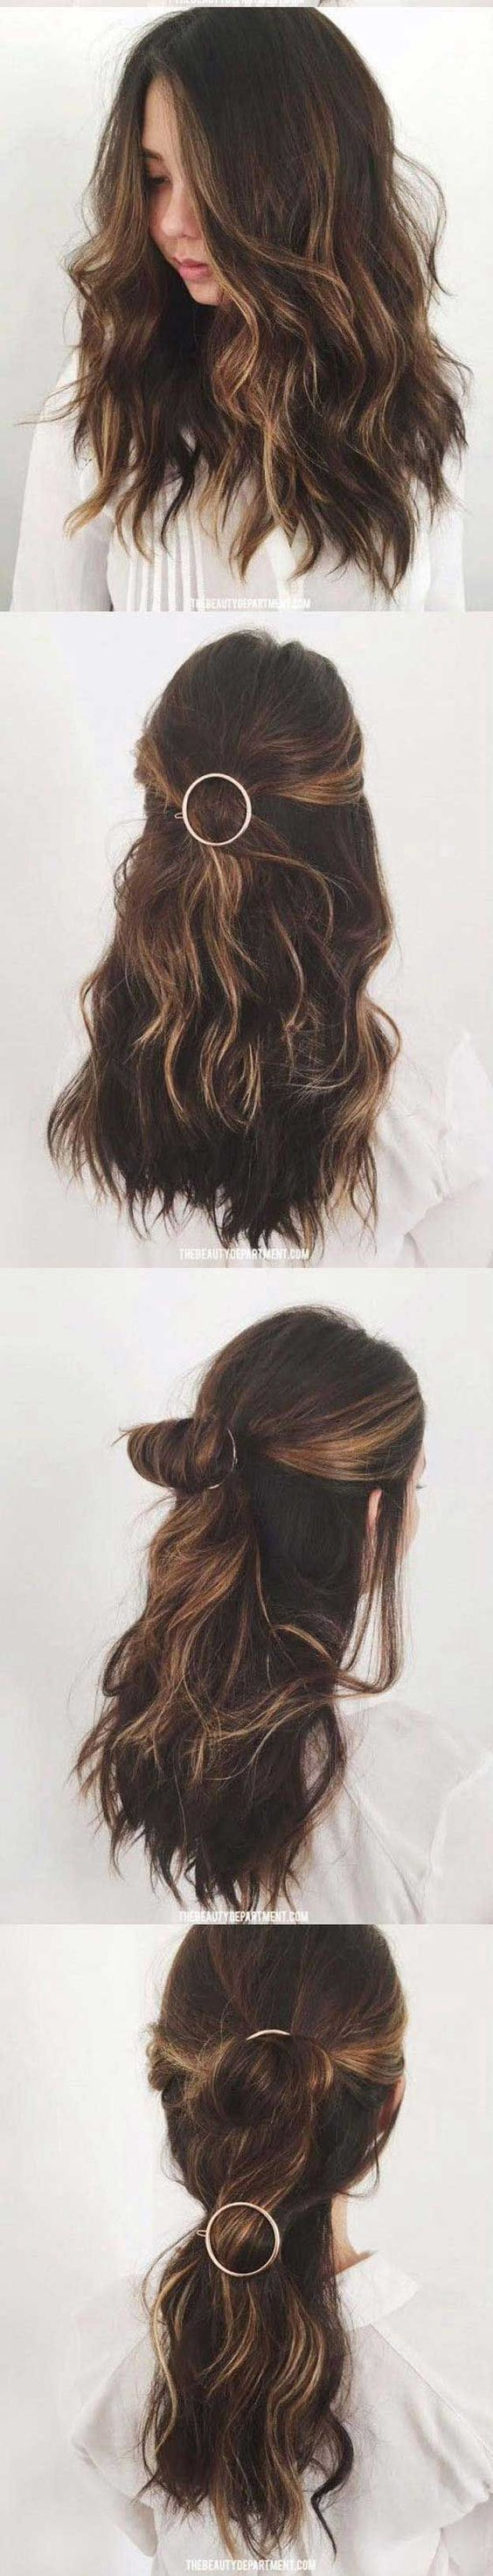 Amazing half uphalf down hairstyles for long hair circle barrette